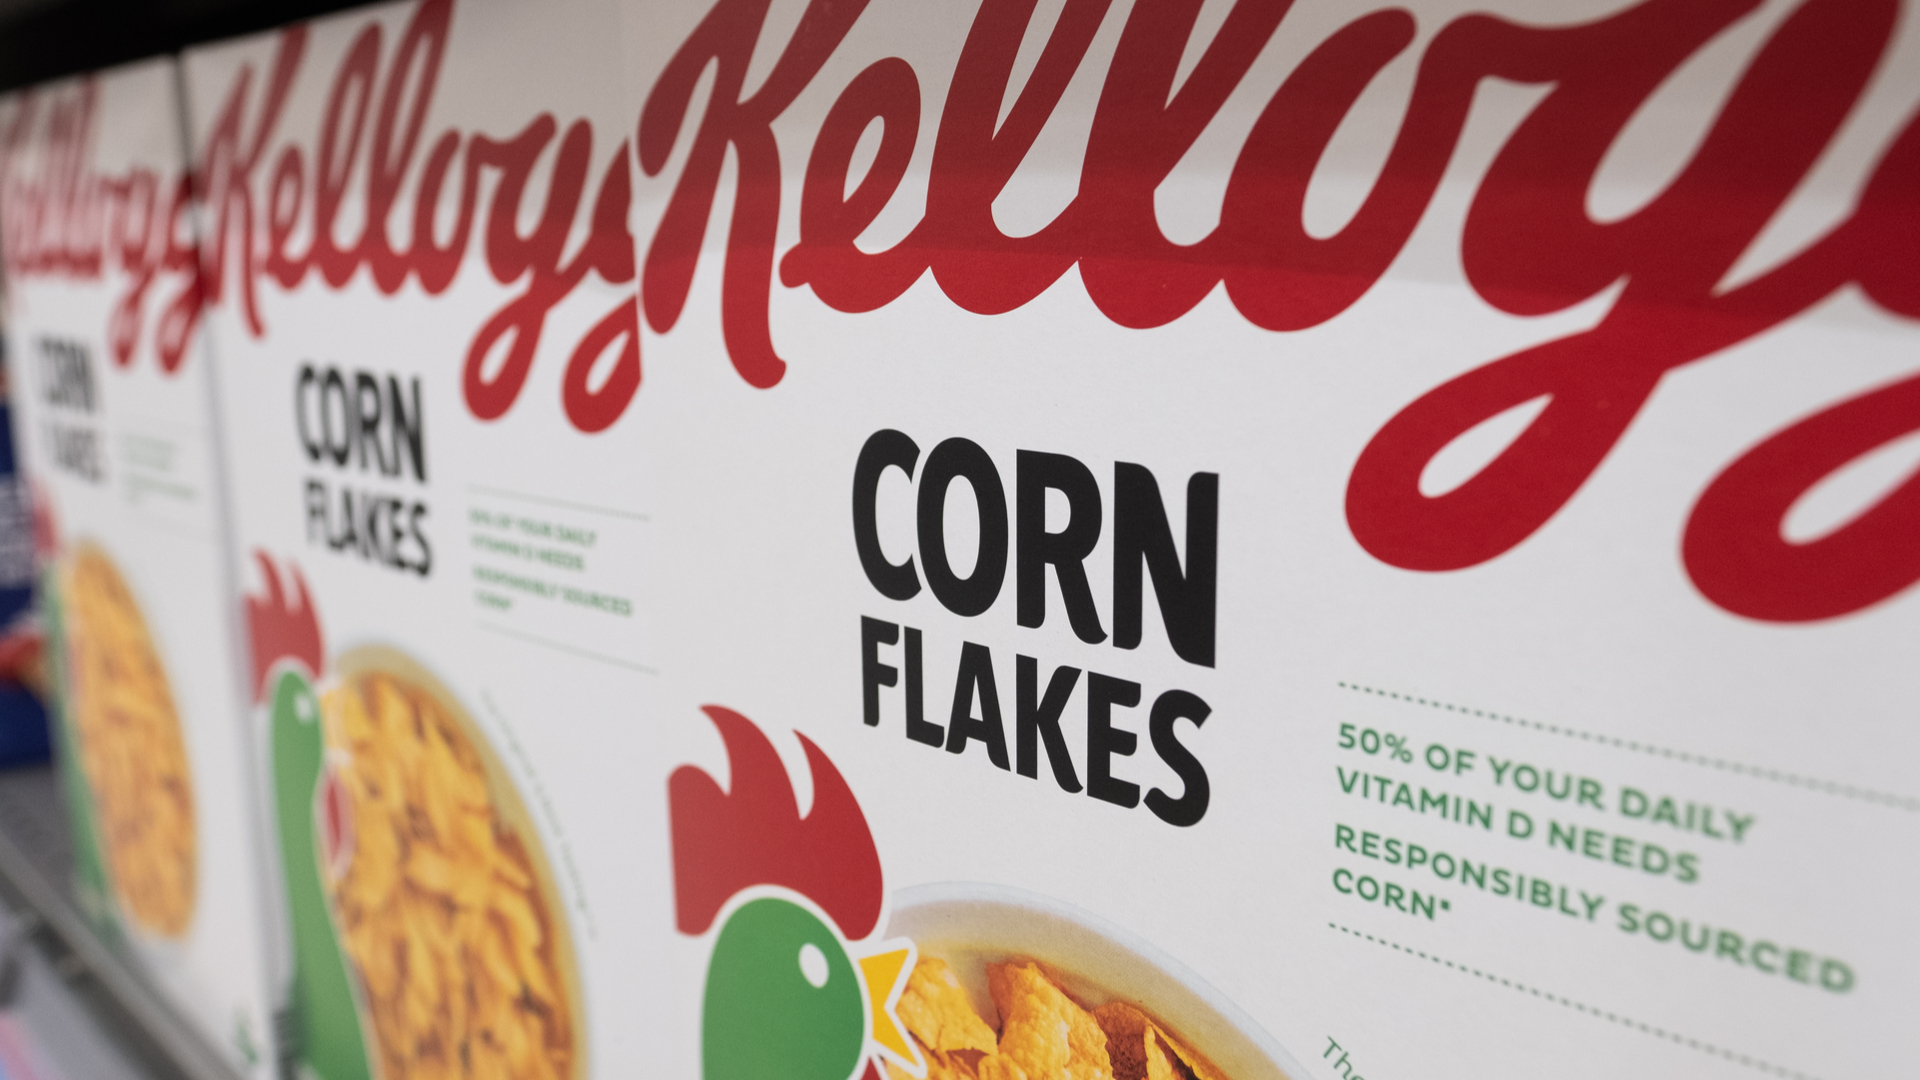 Corn Flakes, Mountain Dew and 9 Other Beloved Brands With a Twisted History